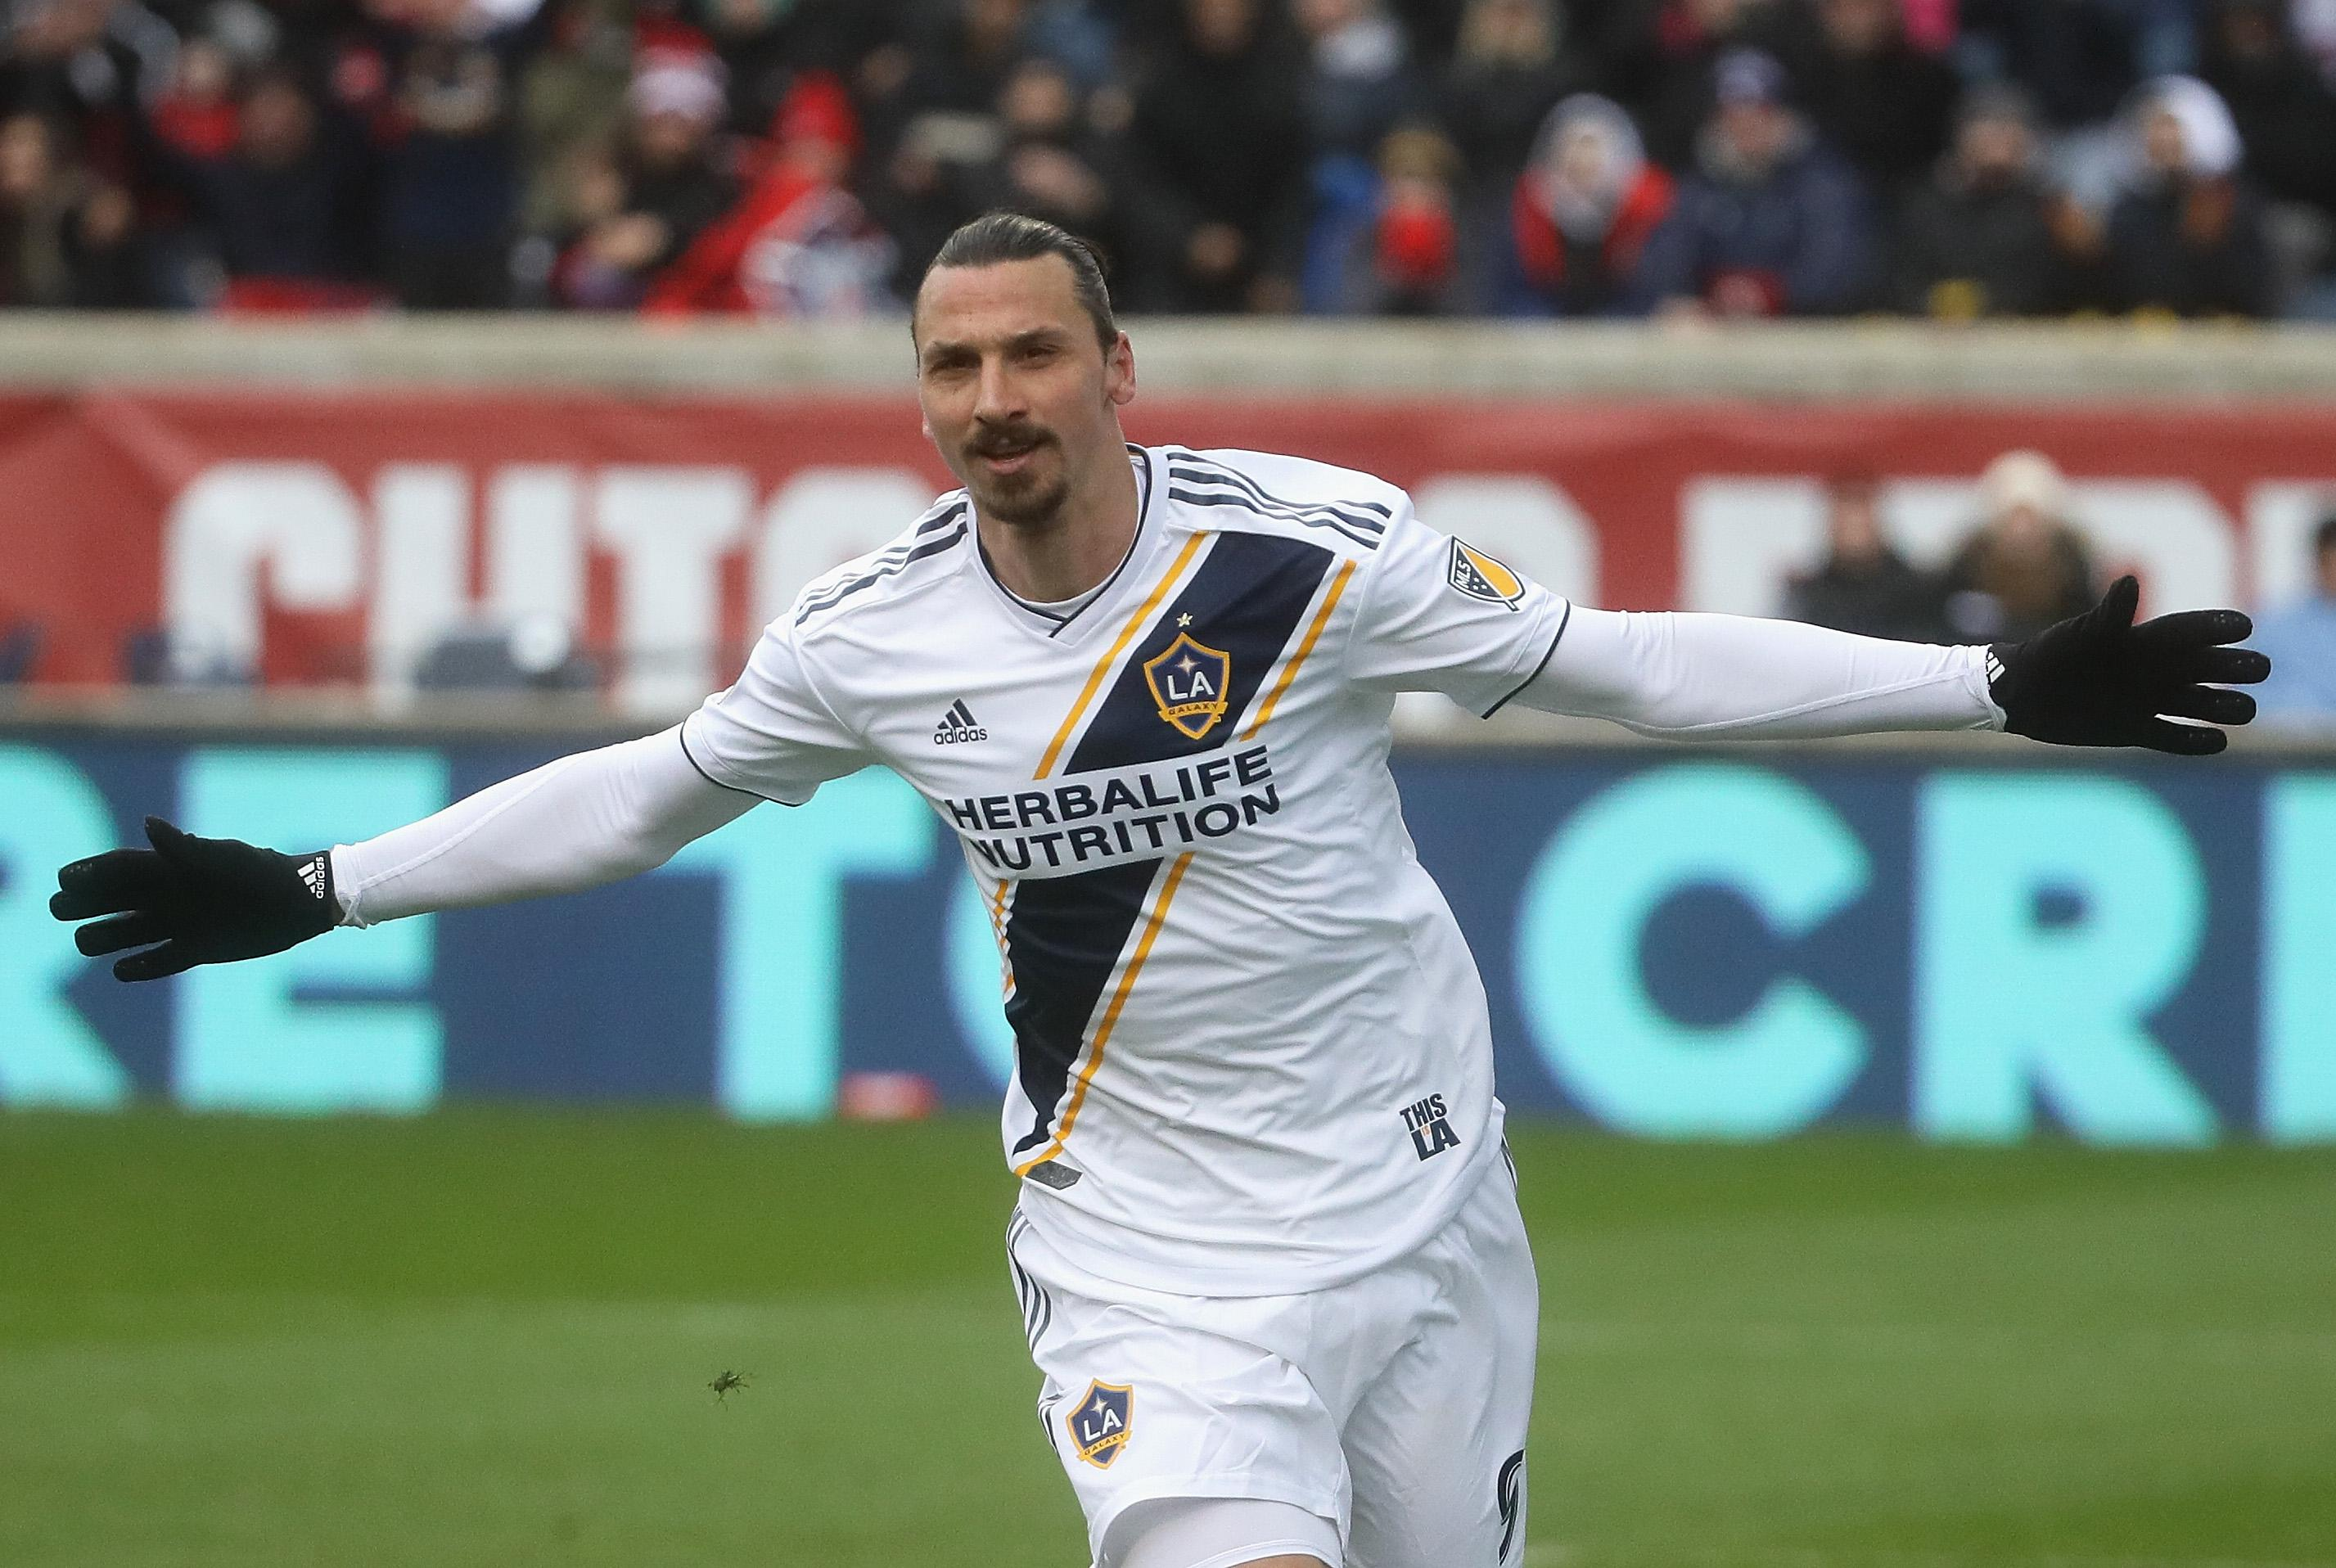 Zlatan Ibrahimovic Playing In The World Cup? Sweden Coach Says No